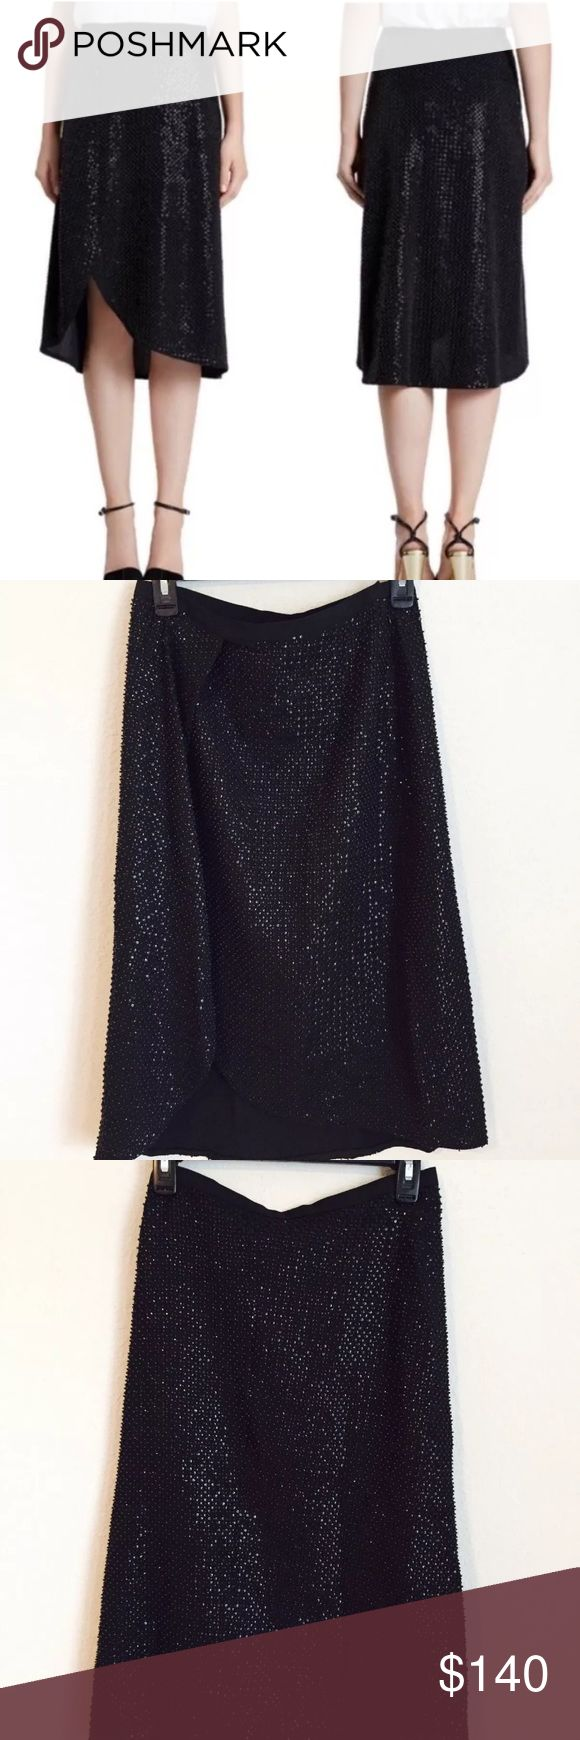 Halston Heritage Black Sequin Faux Wrap Skirt Sz 4 Halston Heritage black sequin skirt with front faux wrap. New with tags. Size 4. 🚫 No trades Halston Heritage Skirts